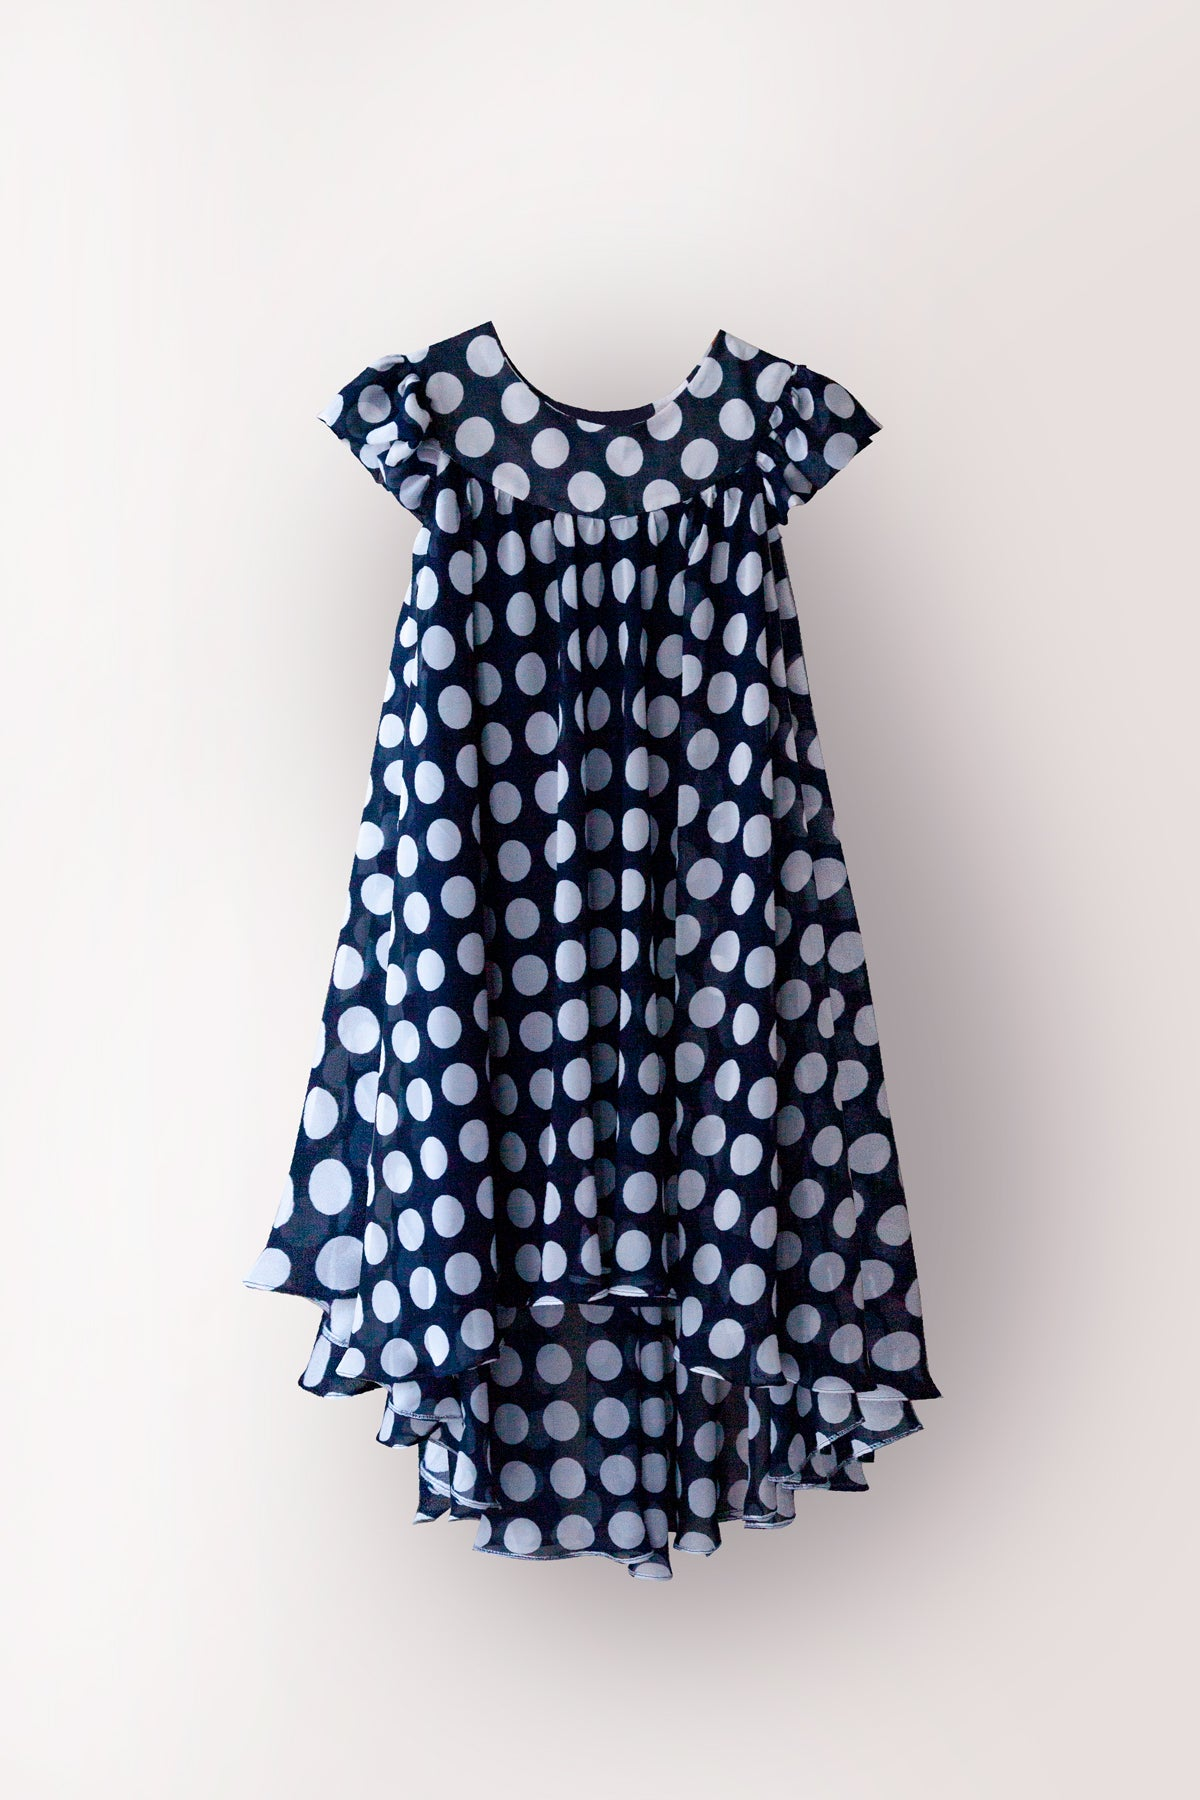 Mersuli Polka Dots Blue Dress